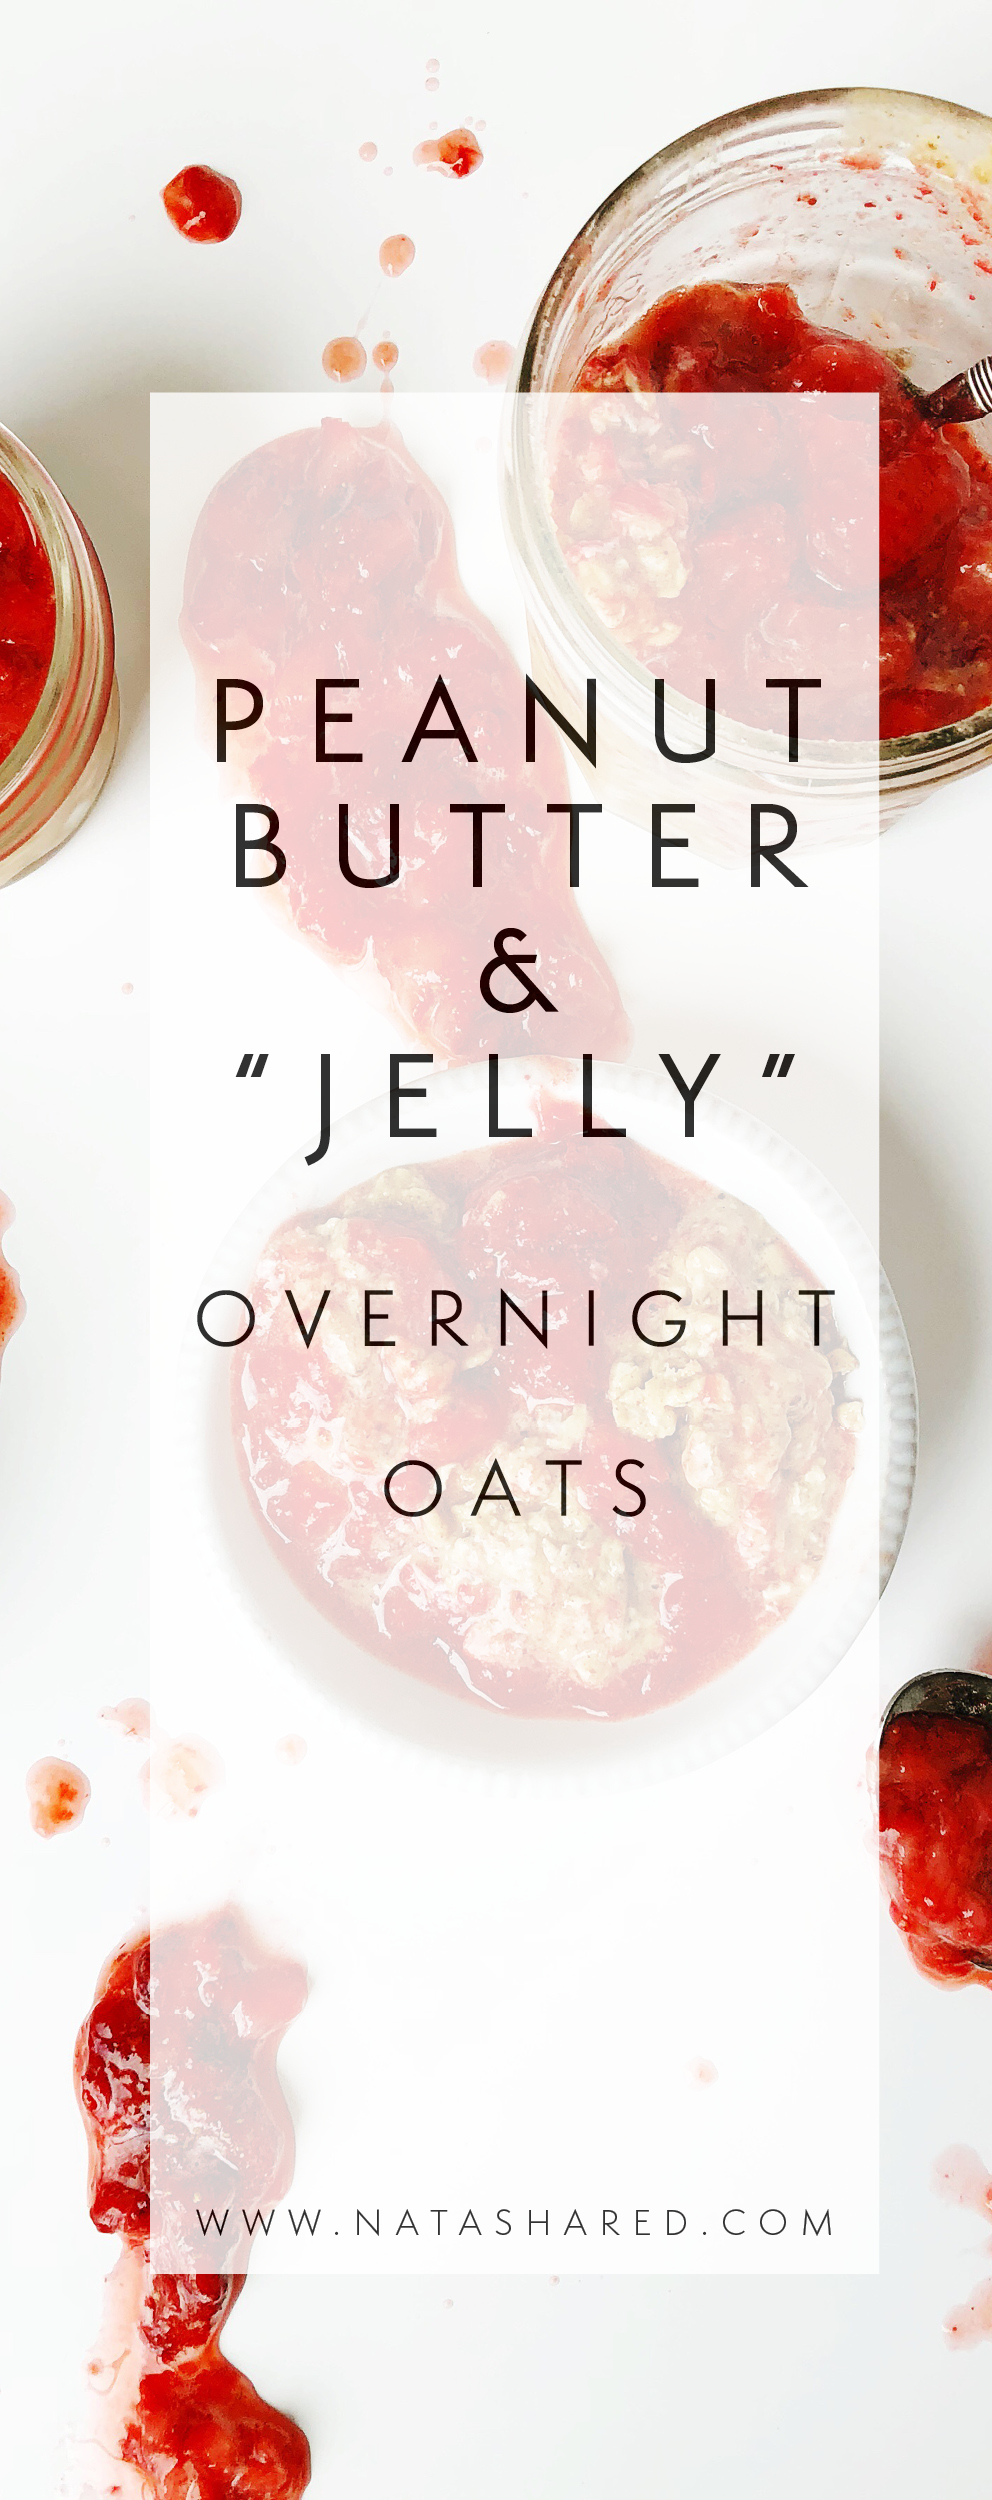 Peanut Butter & Jelly Overnight Oats | Overnight Oats Club